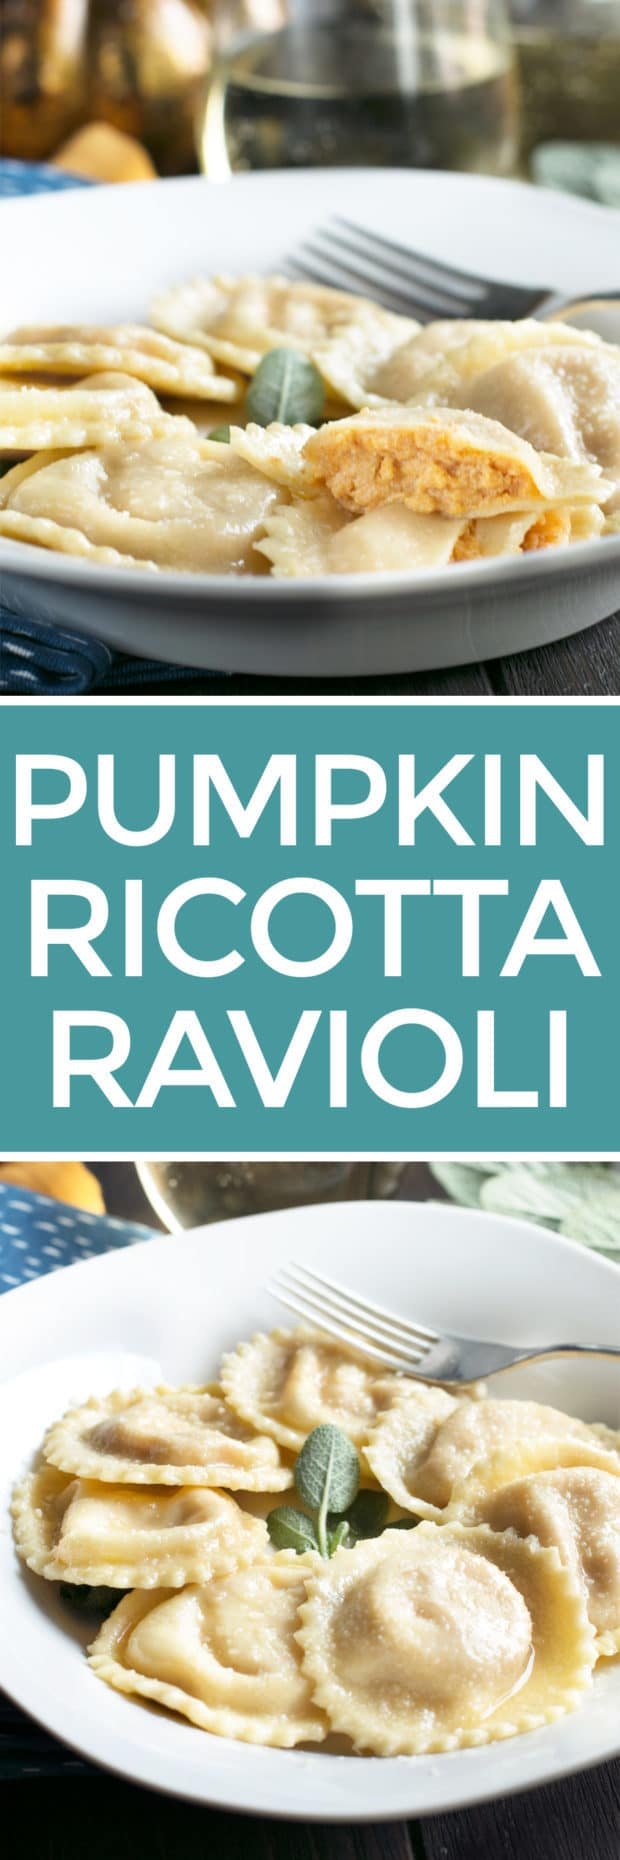 Pumpkin Ricotta Ravioli with Brown Butter Sage Sauce | cakenknife.com #pasta #ravioli #homemade #recipe